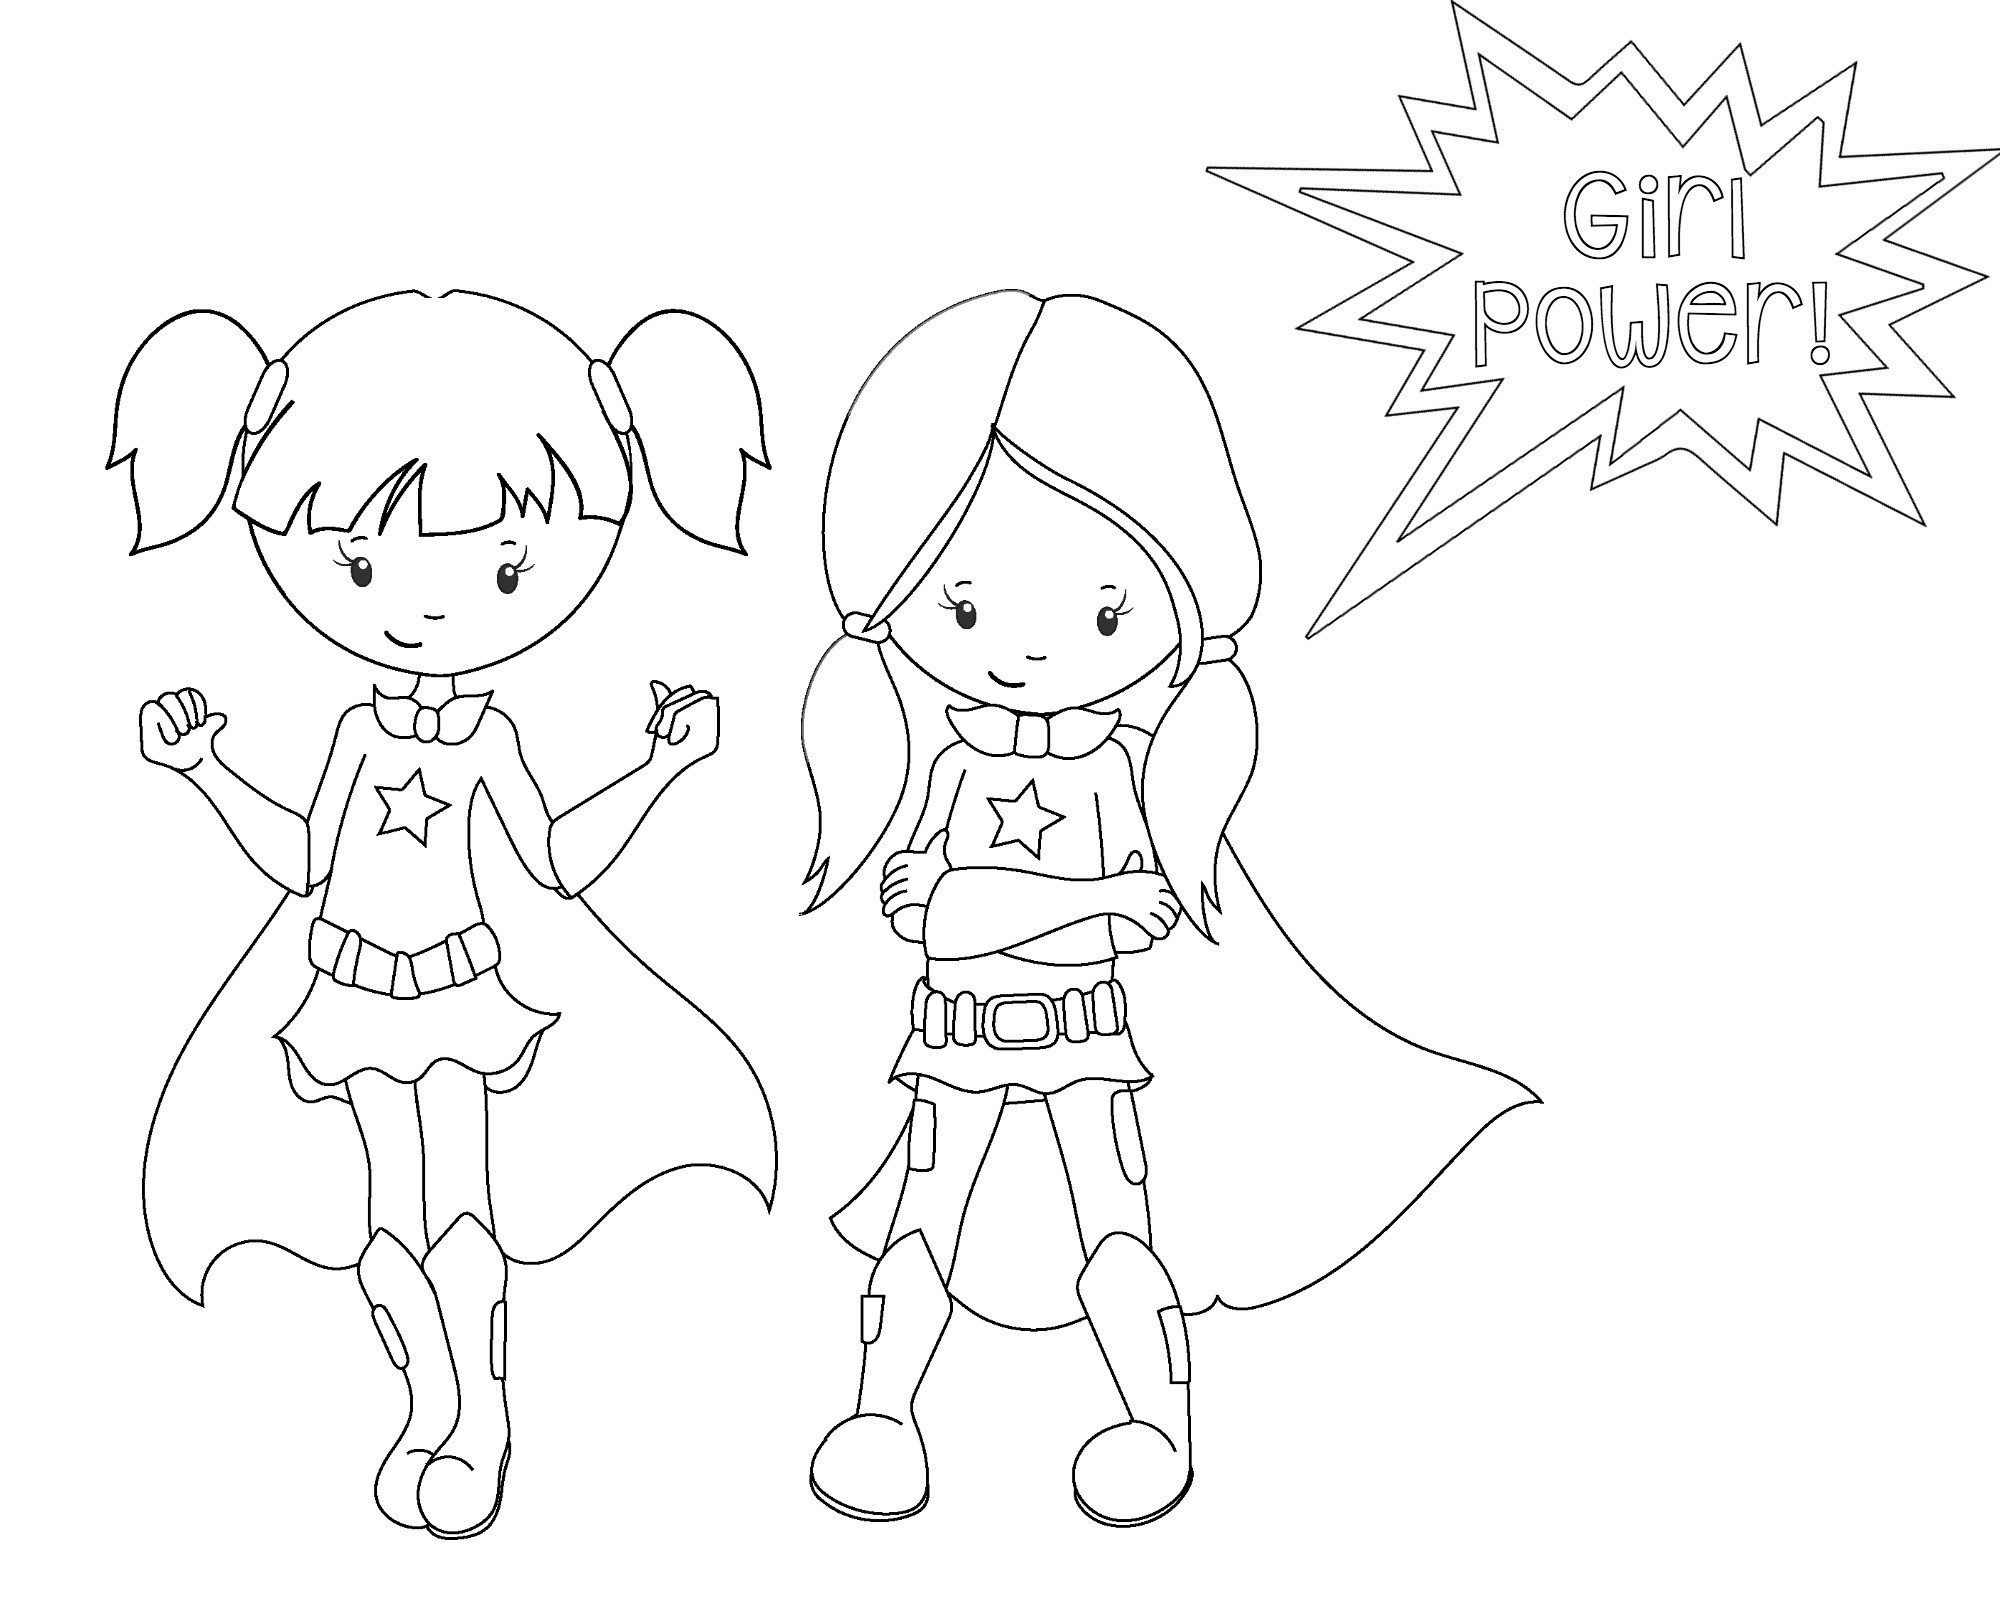 Super Hero Coloring Pages For Kids  Superhero Coloring Pages Crazy Little Projects